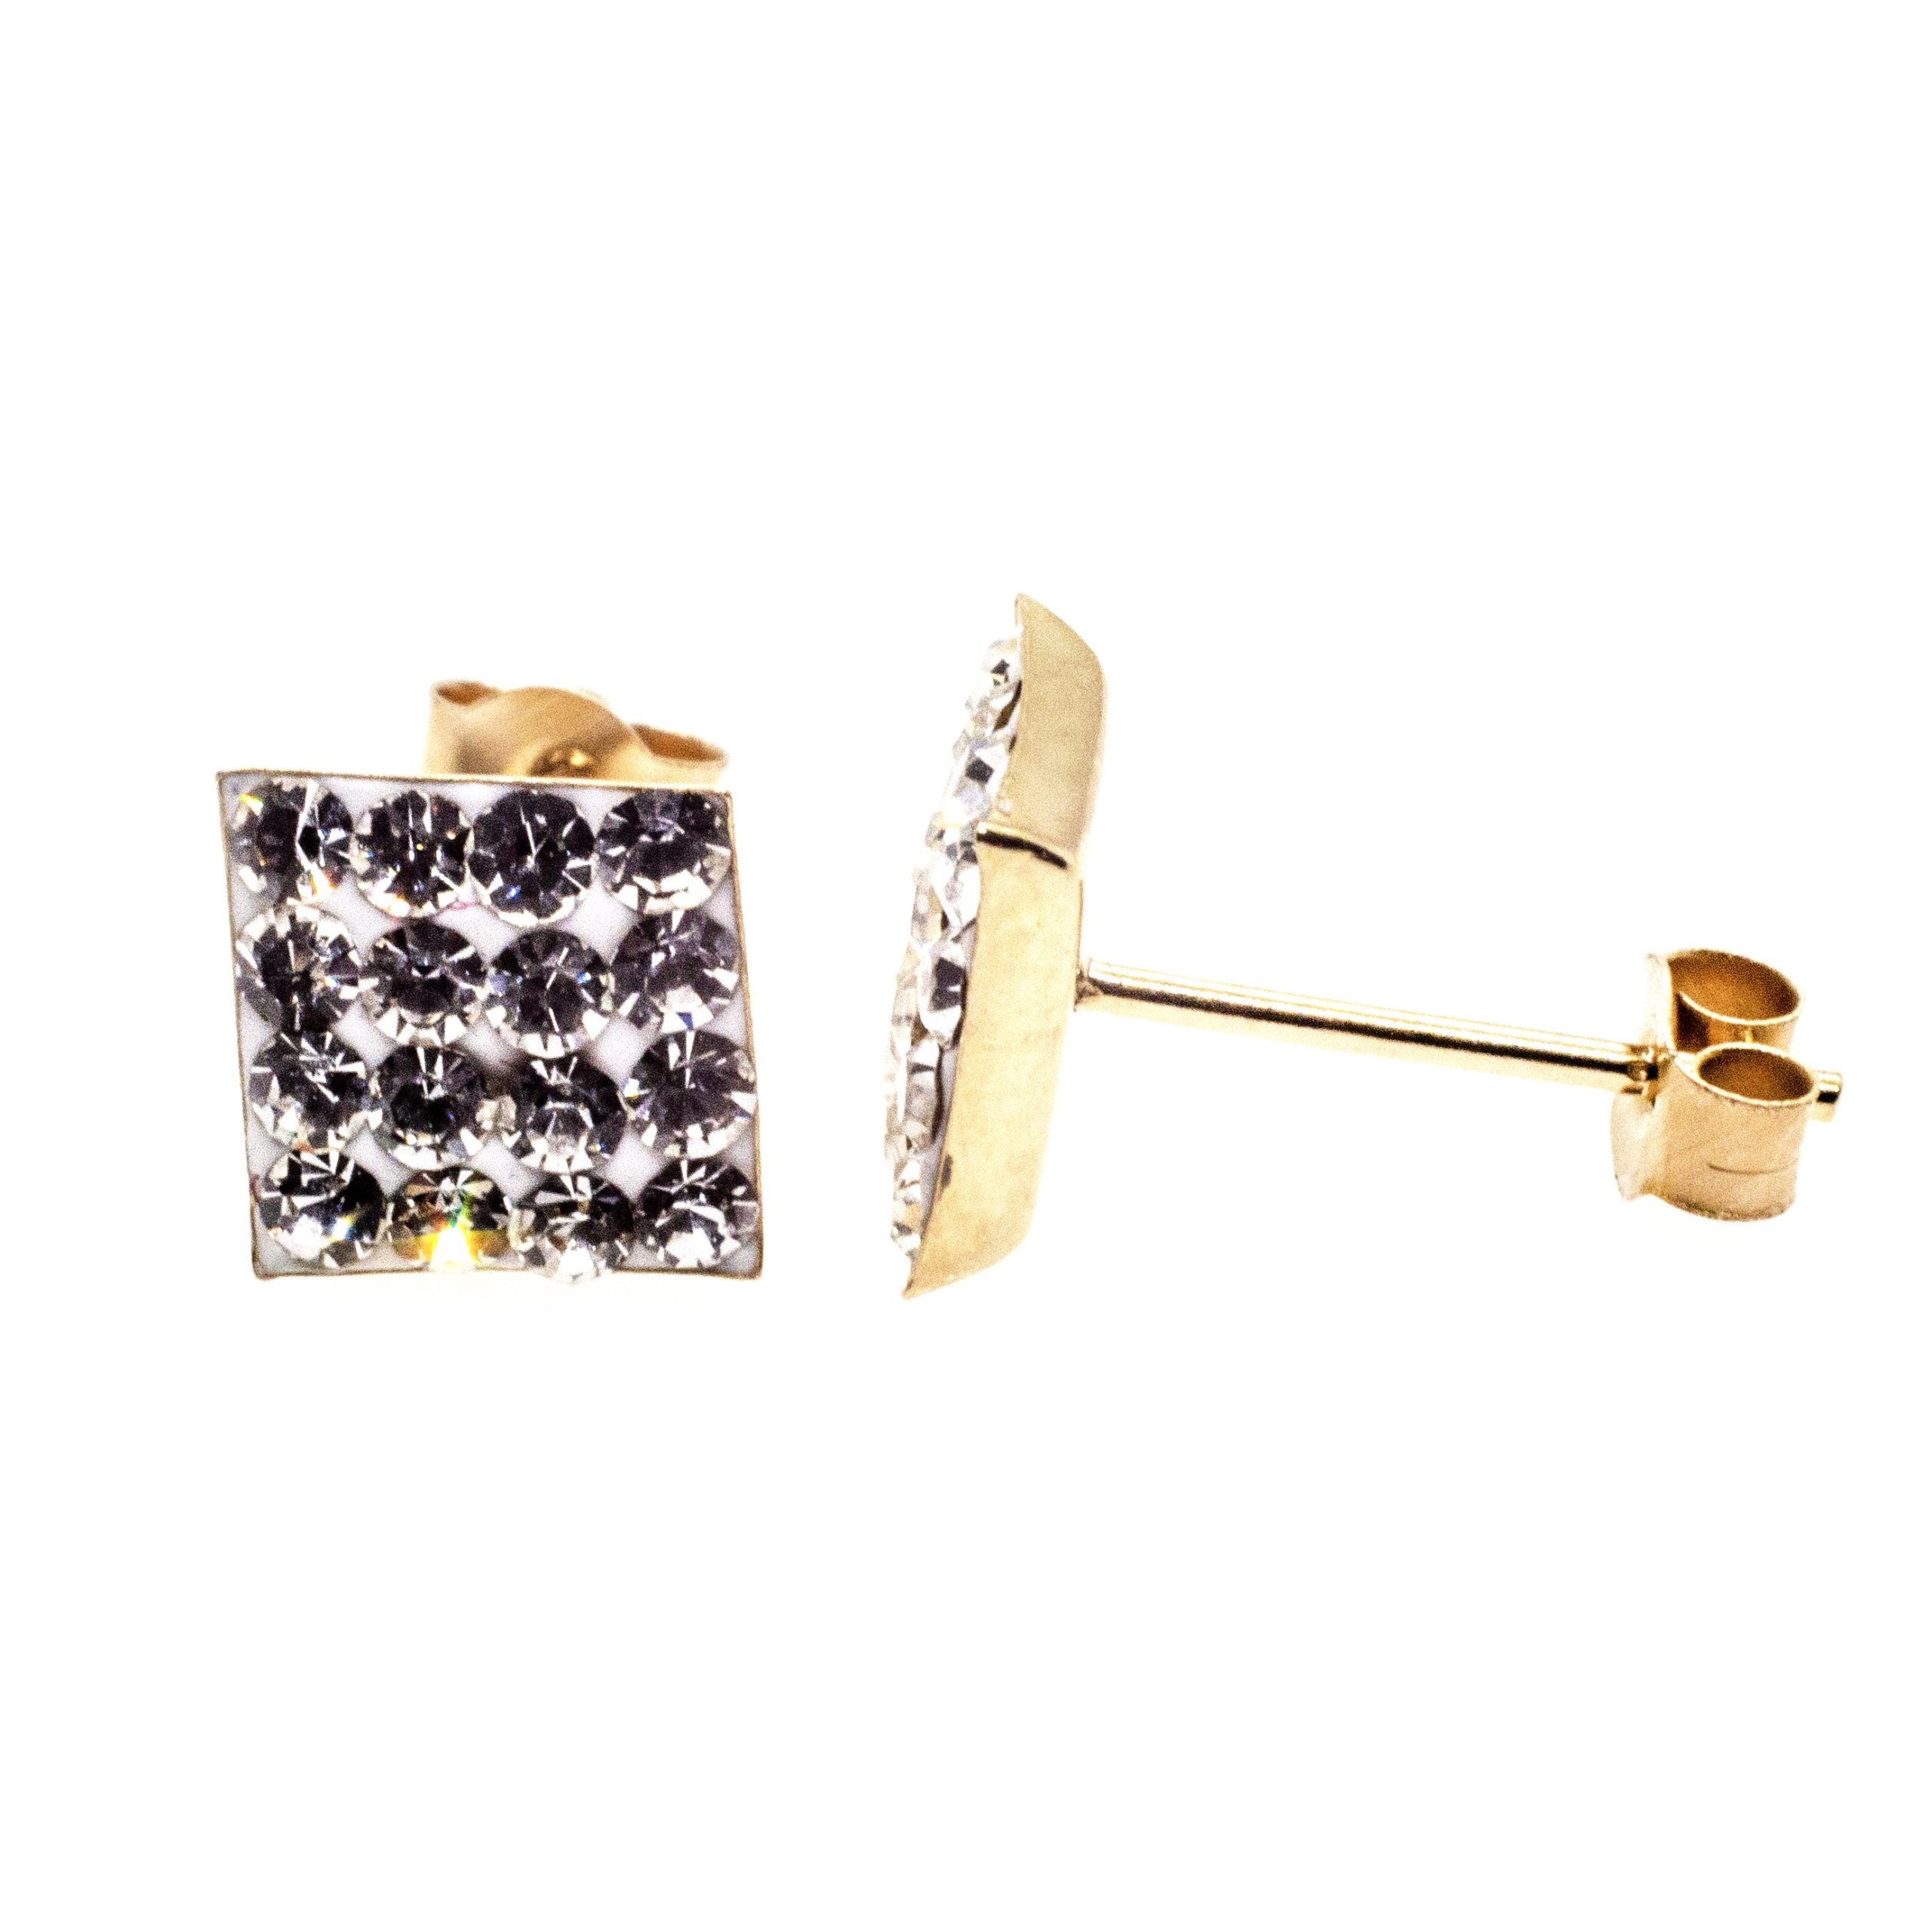 7mm square stud earring 9ct gold with Austrian crystal gems alt 2